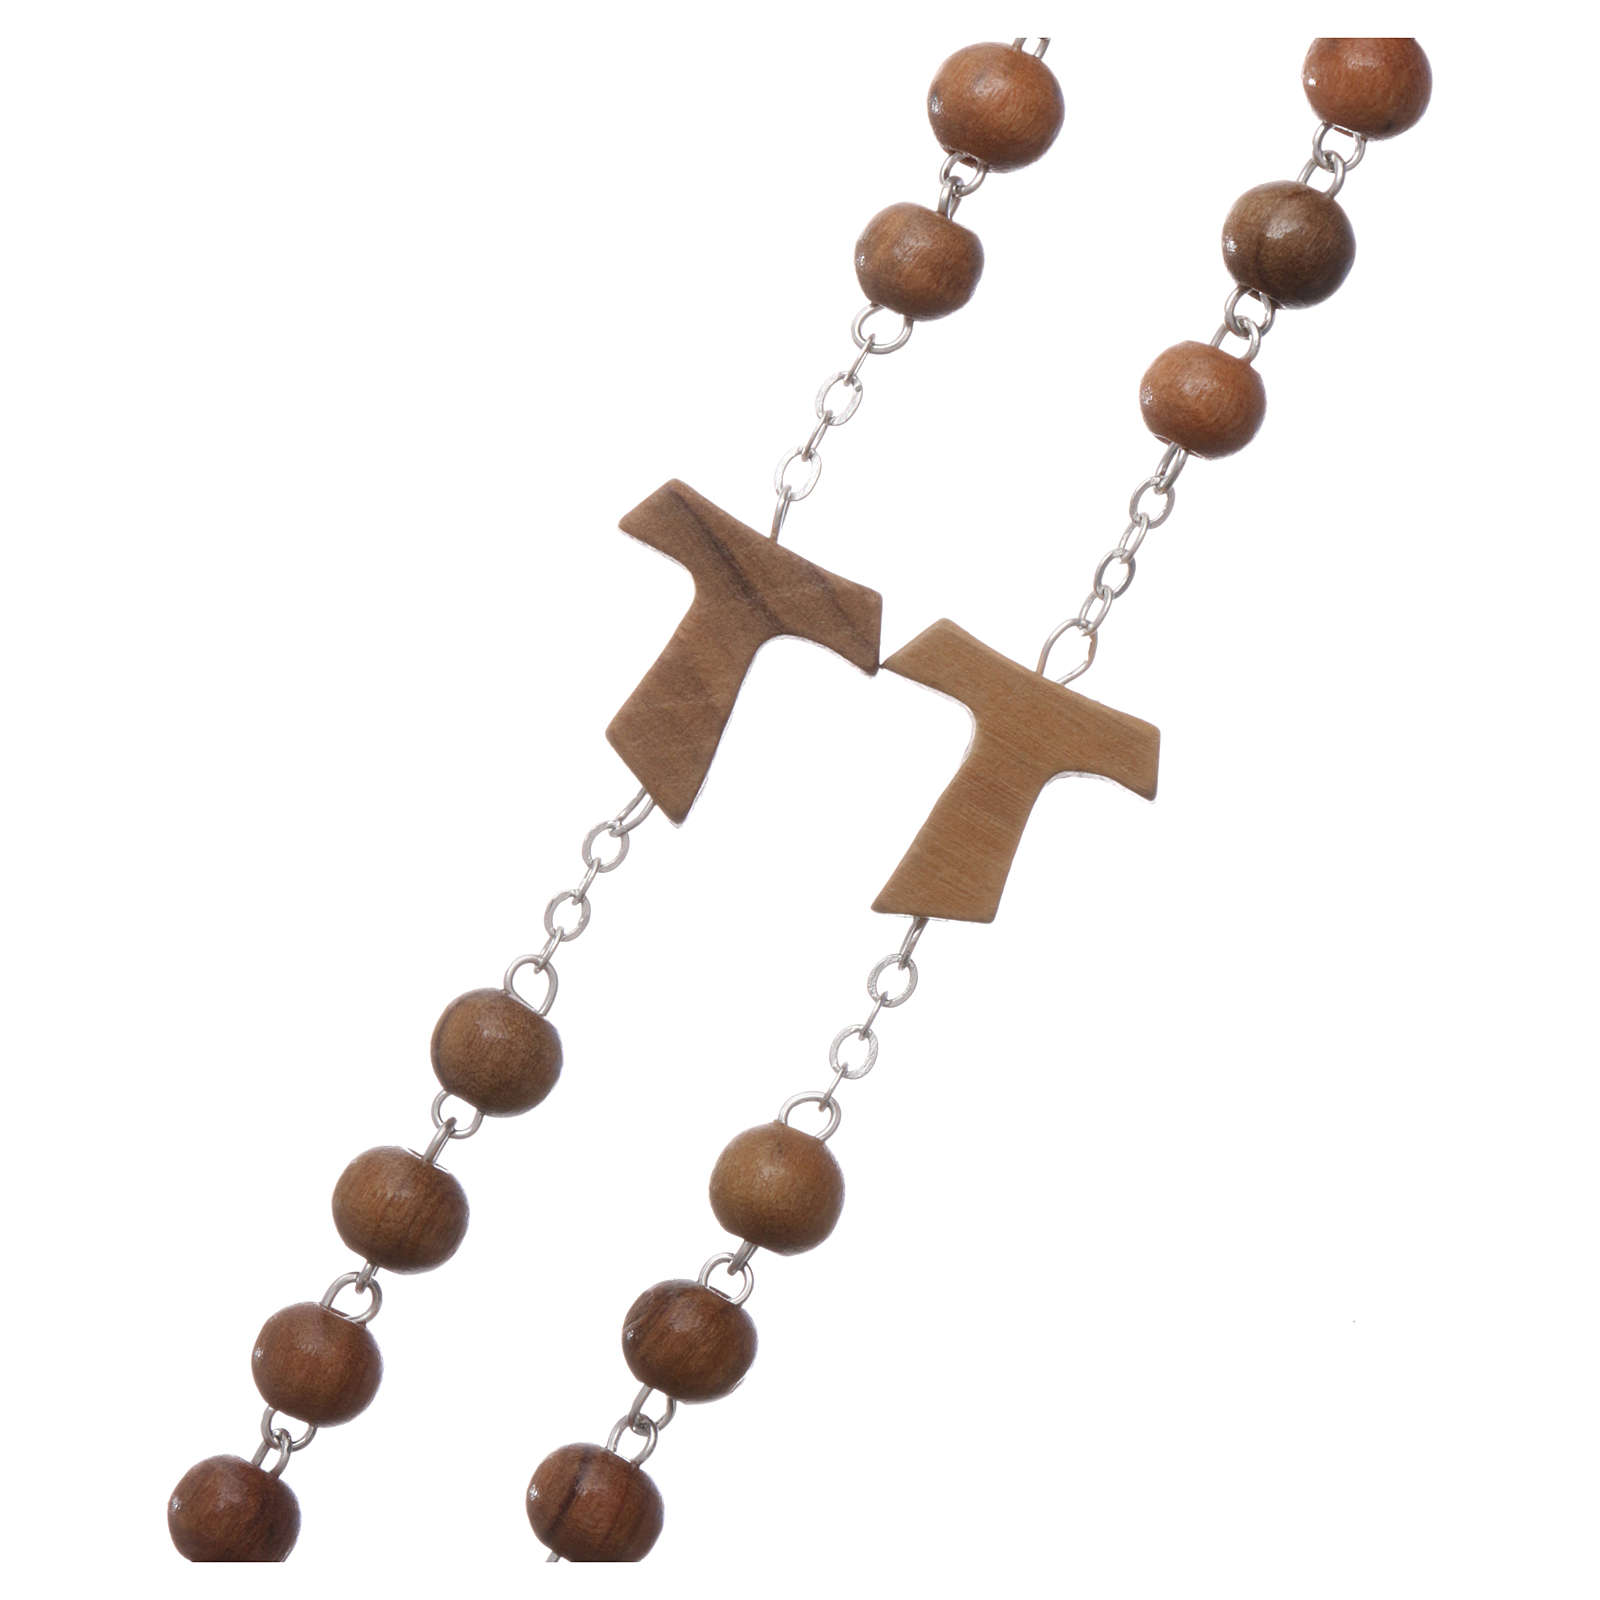 Franciscan rosary in olive wood with 4x5 mm grains 4